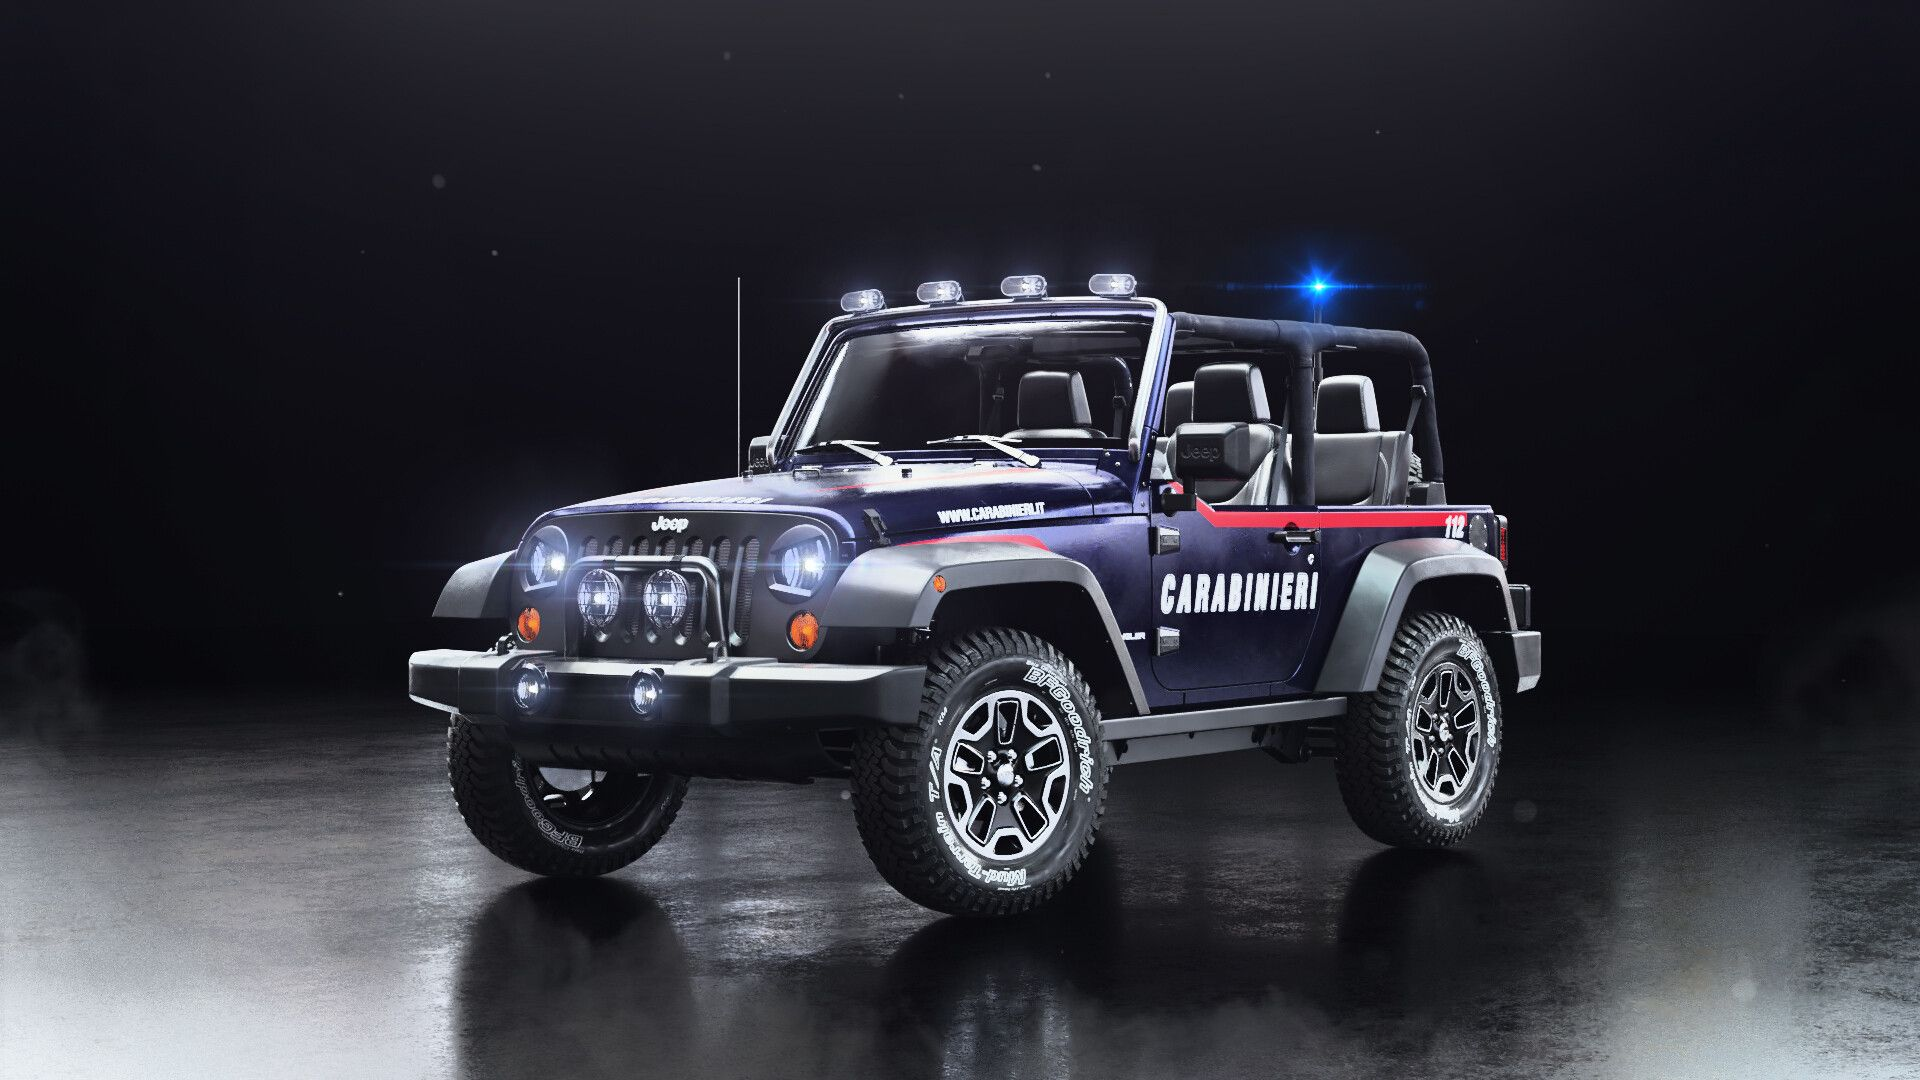 Jeep Wrangler By Stefan Radenkovicdemanding Over 100 Hours Of Effective Work And Consisting Of Over 500 Objects The Civilian Edit Jeep Wrangler Jeep Wrangler